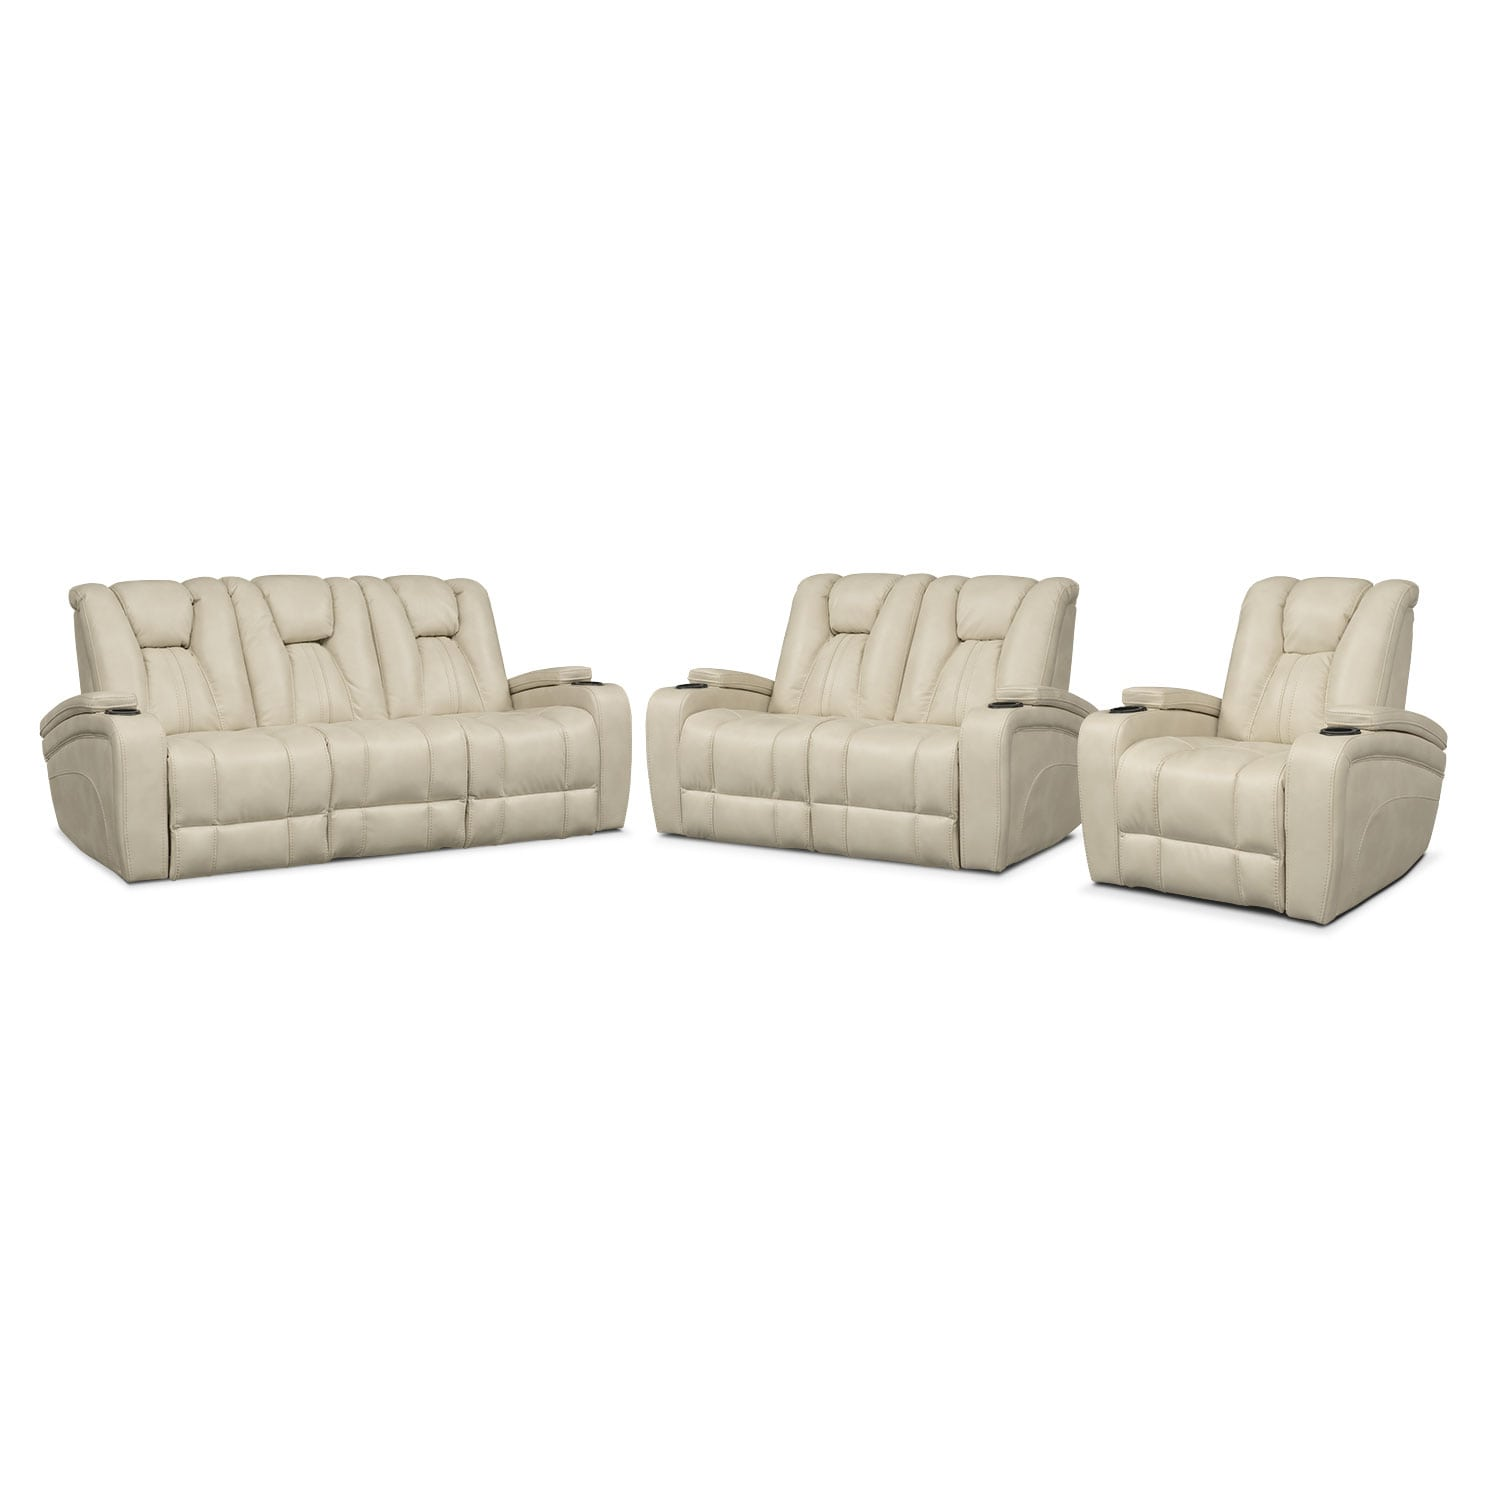 Pulsar Dual Power Reclining Sofa, Dual Power Reclining Loveseat and Power Recliner Set - Cream